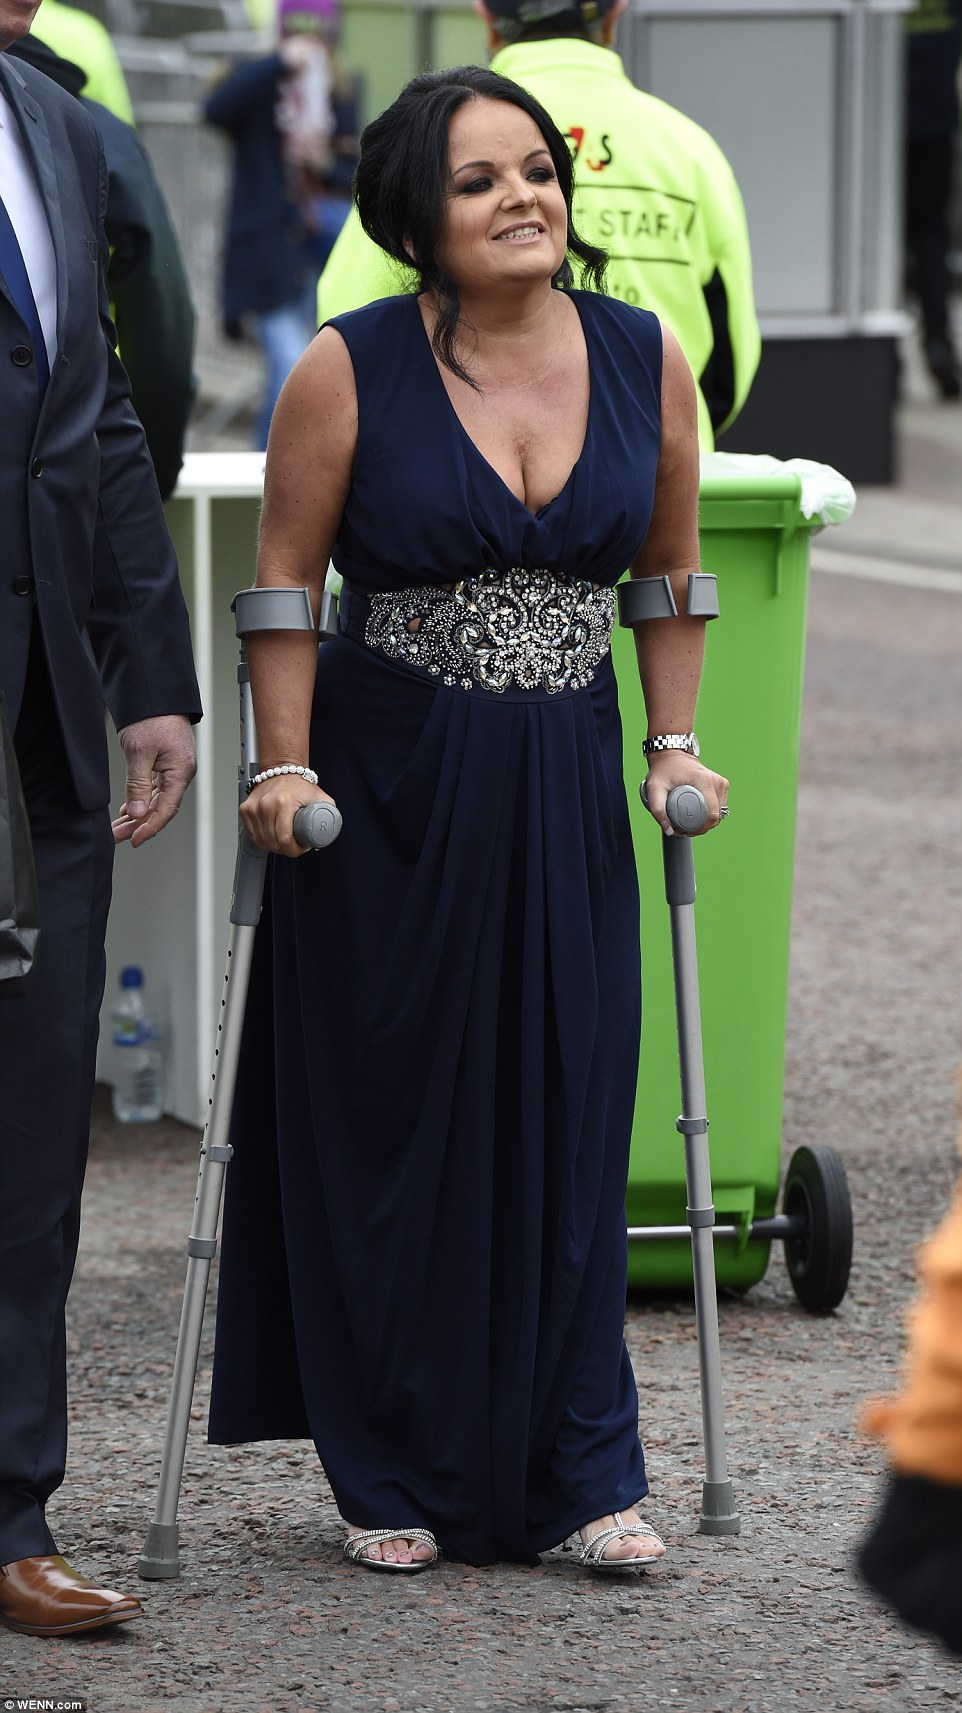 One woman didn't let being on crutches hinder her glamour as she stepped out in silver high heeled sandals and an navy dress with an embellished panel at the middle